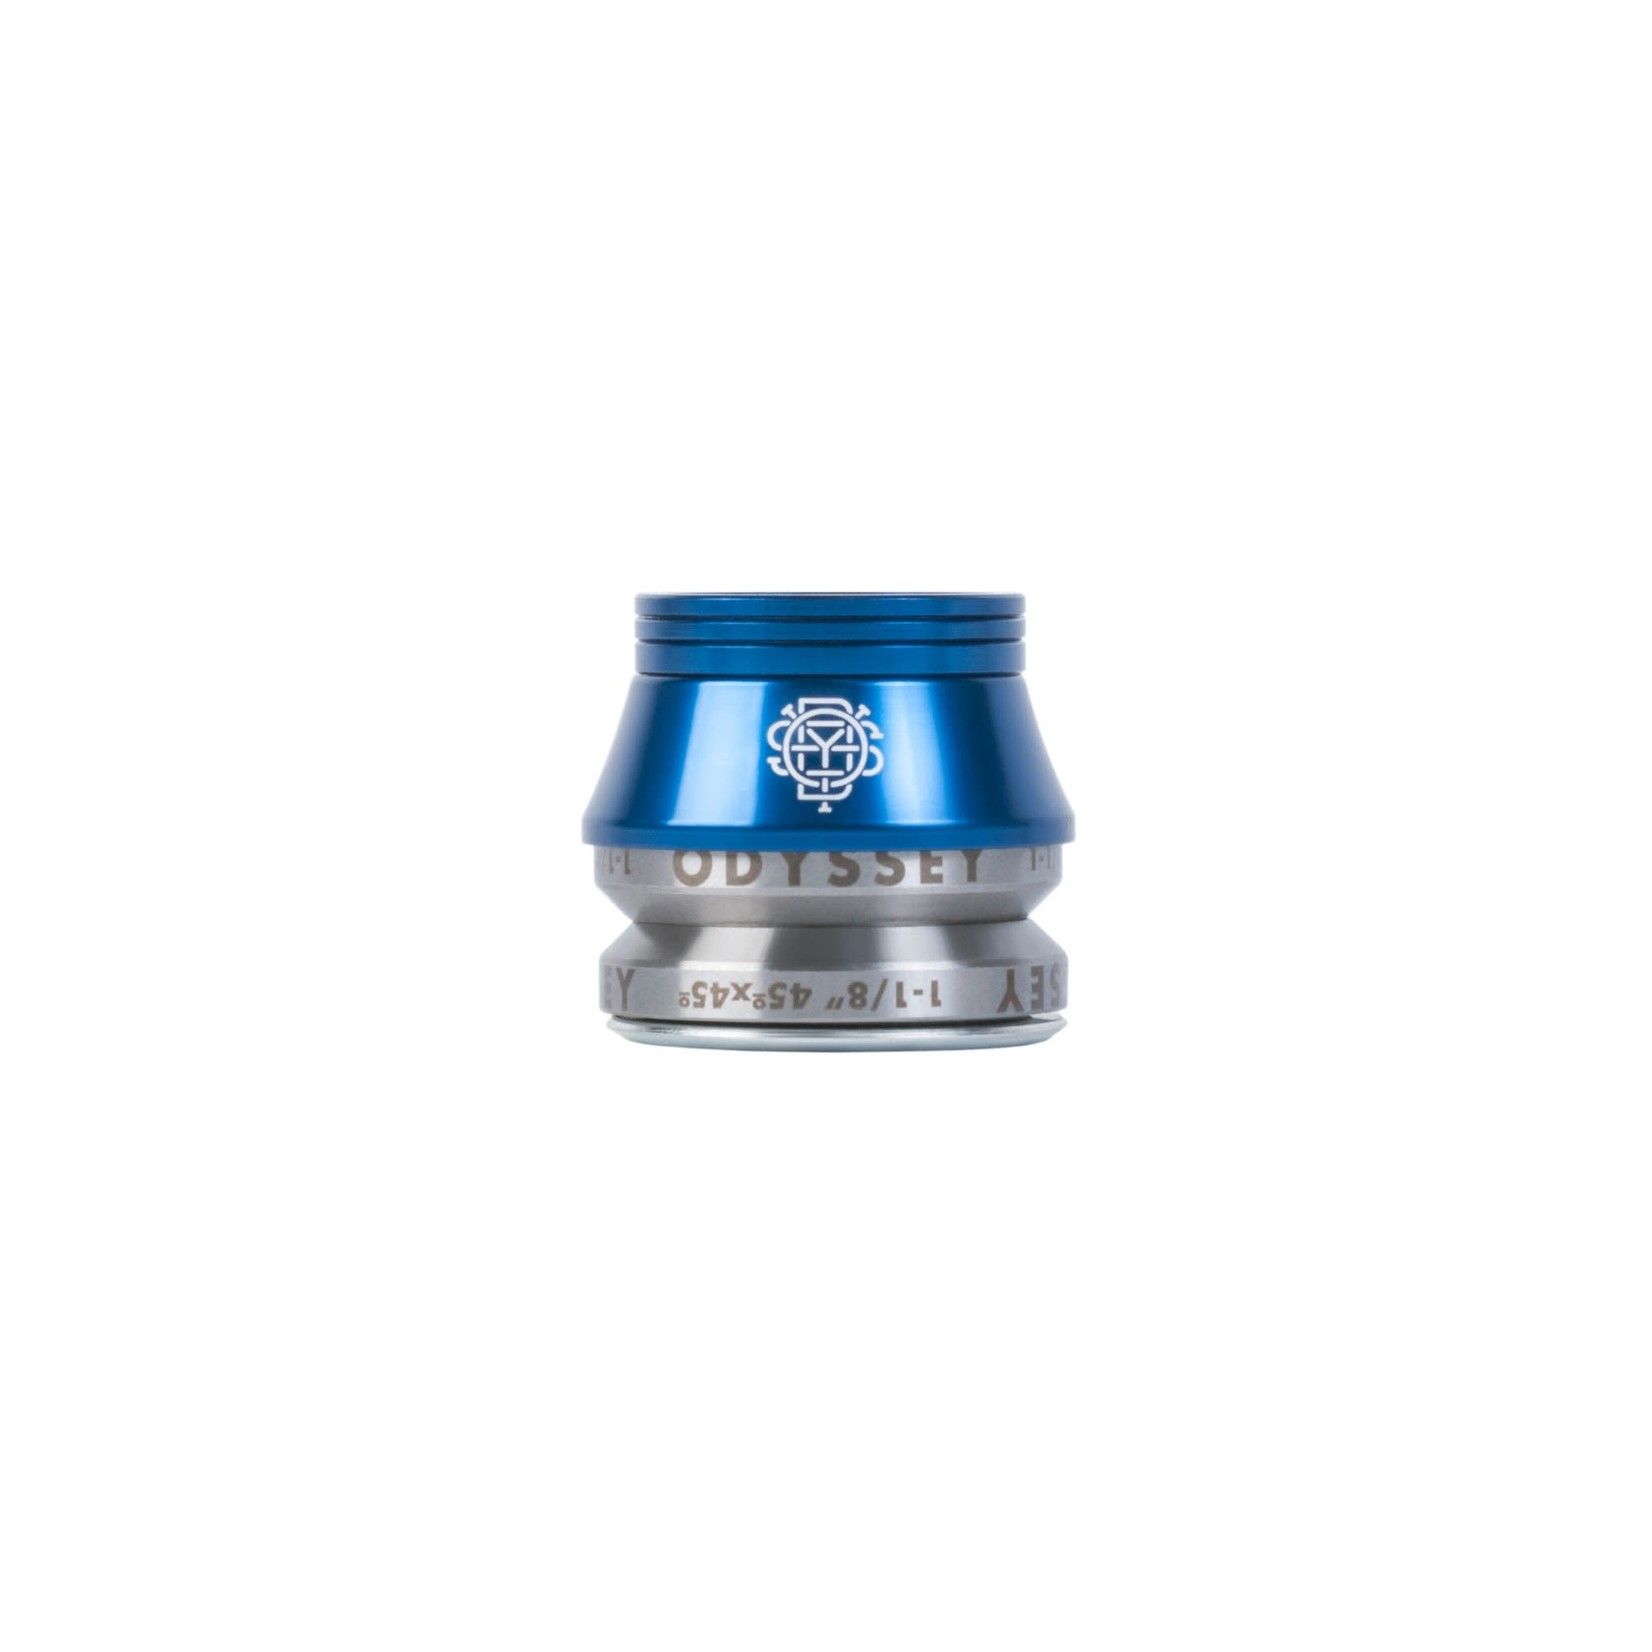 """Odyssey Odyssey Pro Conical Headset - Integrated, 1-1/8"""", 45 x 45, 12mm Stack, Blue"""